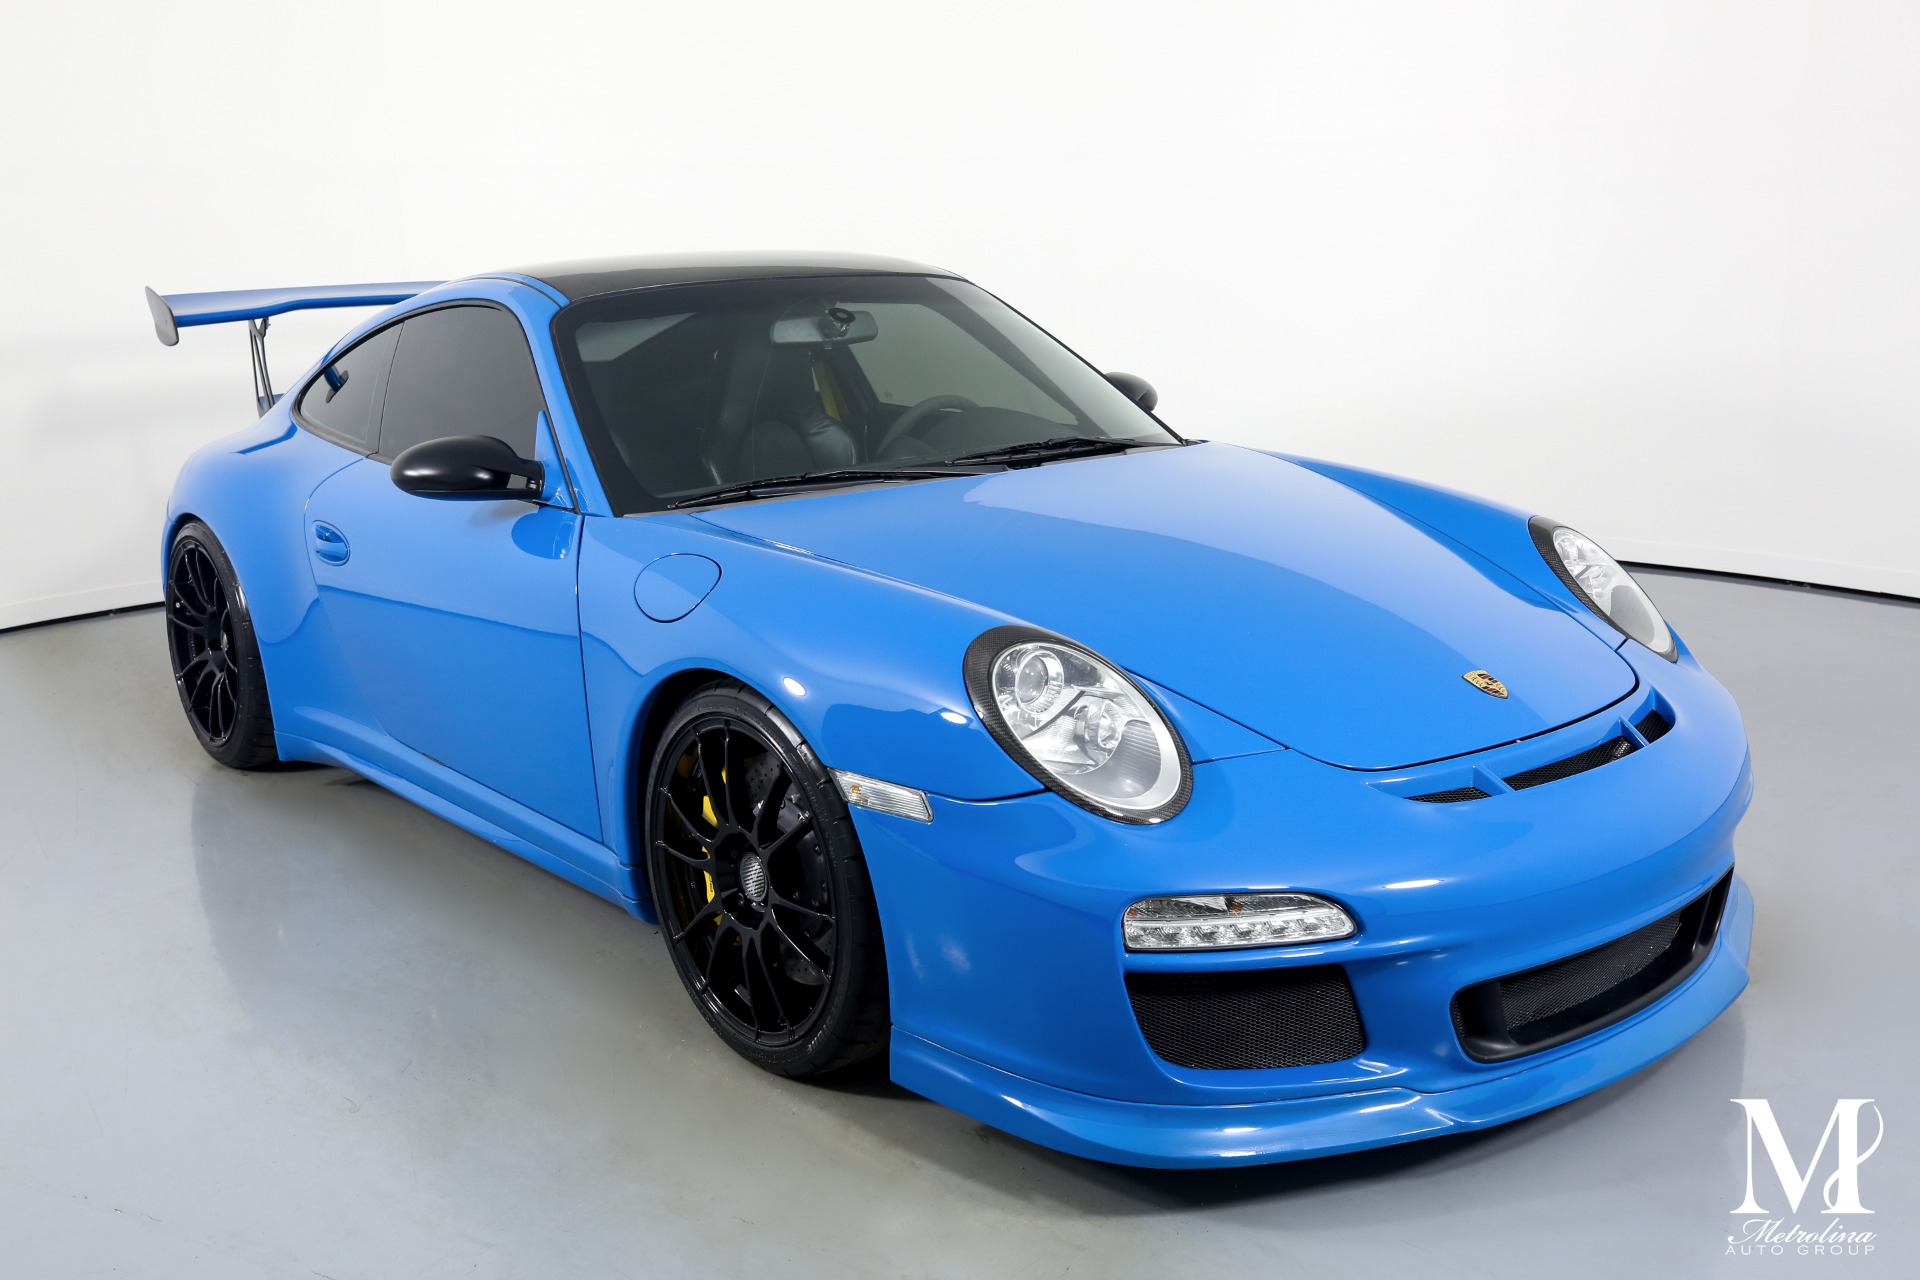 Used 2007 Porsche 911 GT3 for sale $99,996 at Metrolina Auto Group in Charlotte NC 28217 - 2